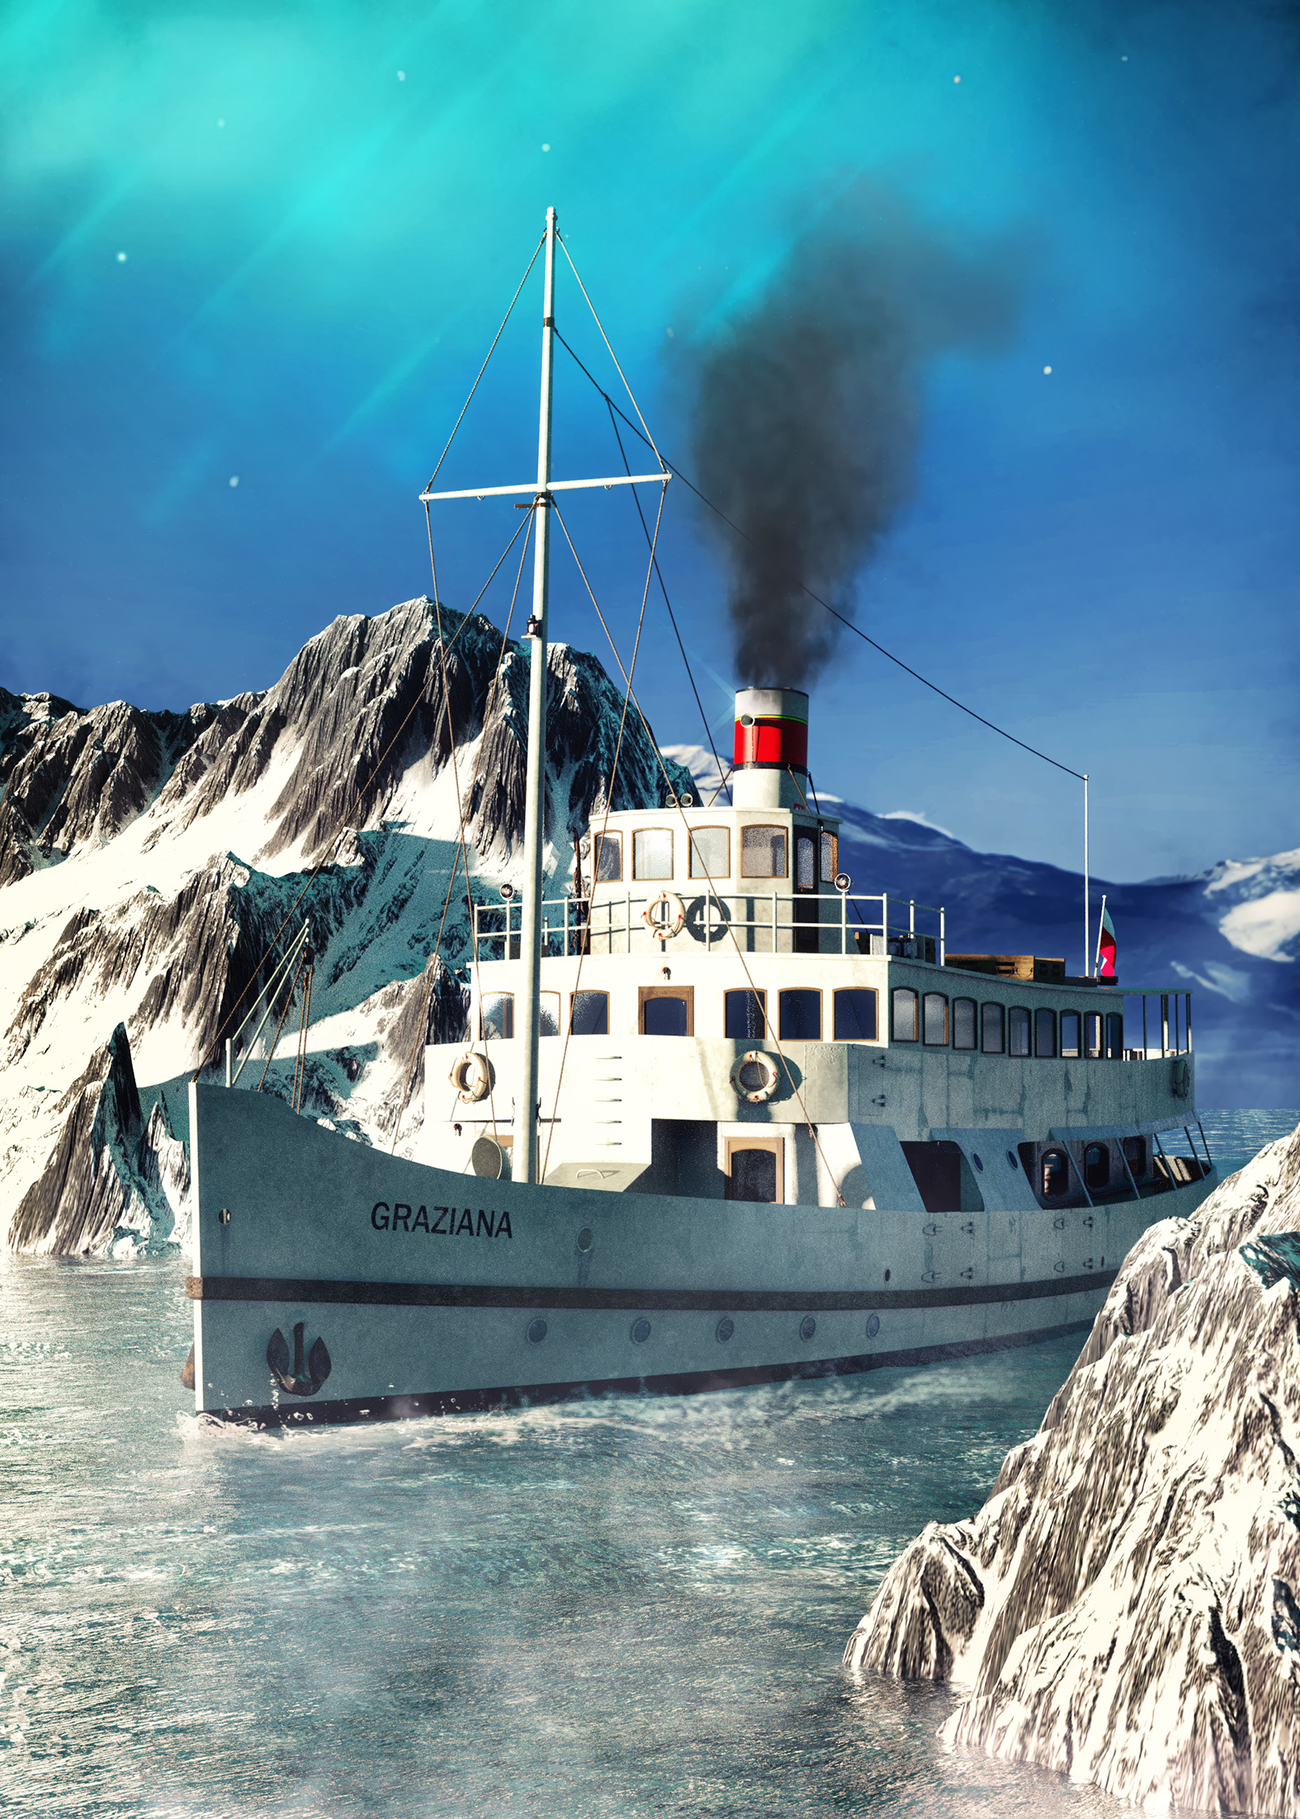 Artic Cruise by francobel1